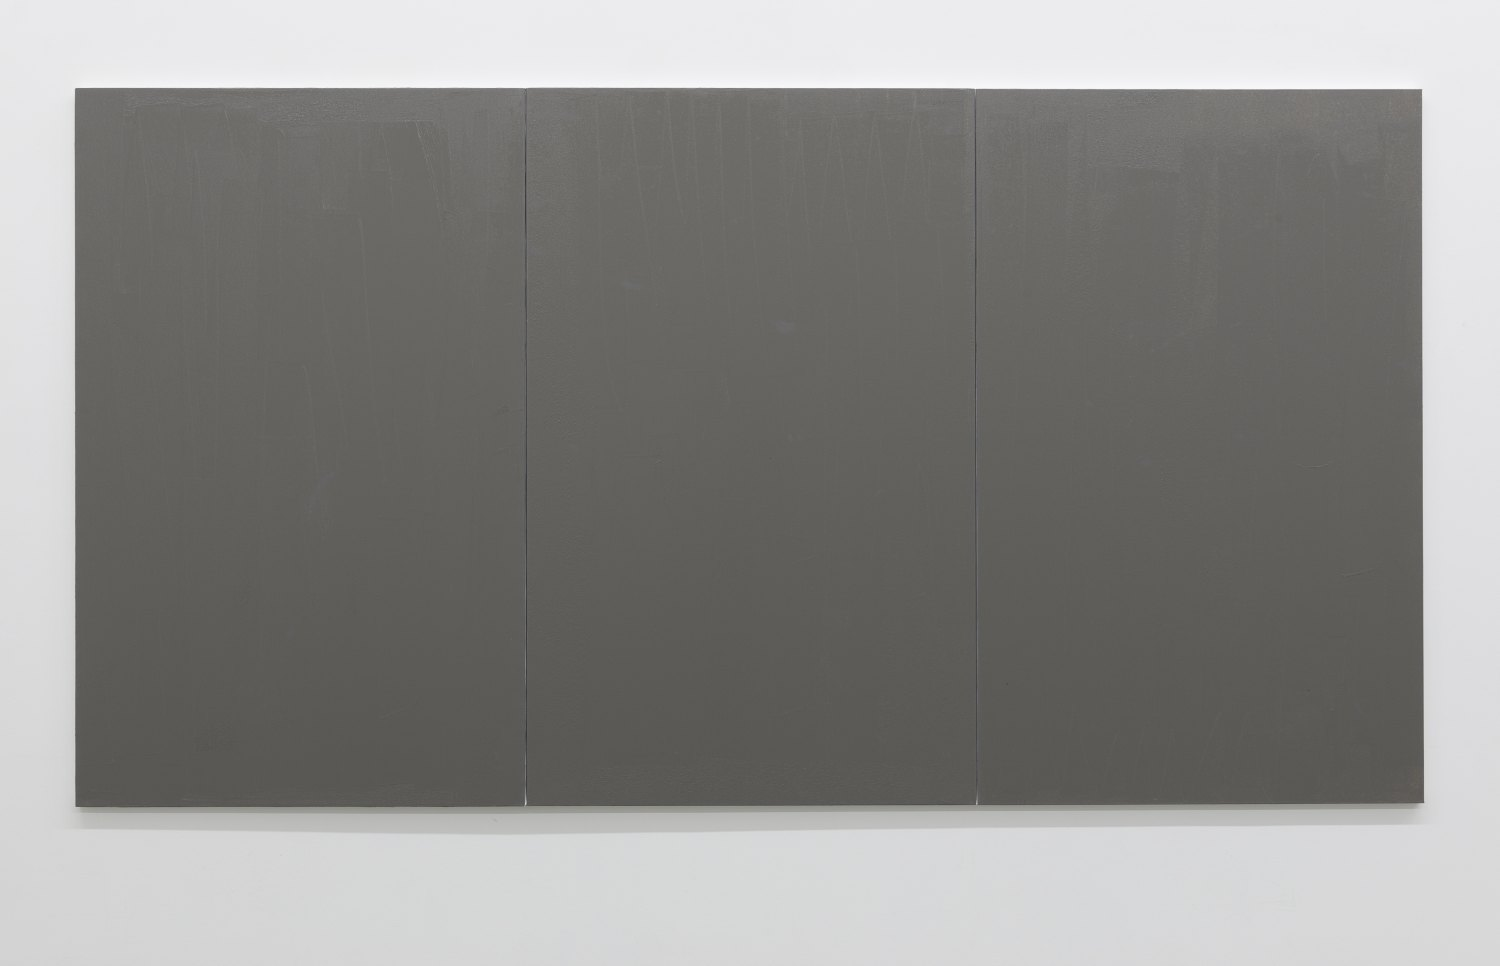 Claire Fontaine Untitled (Fresh monochrome / grey / grey / grey), 2016 Anti climb paint, wood and canvas, 160 x 300 x 4 cm